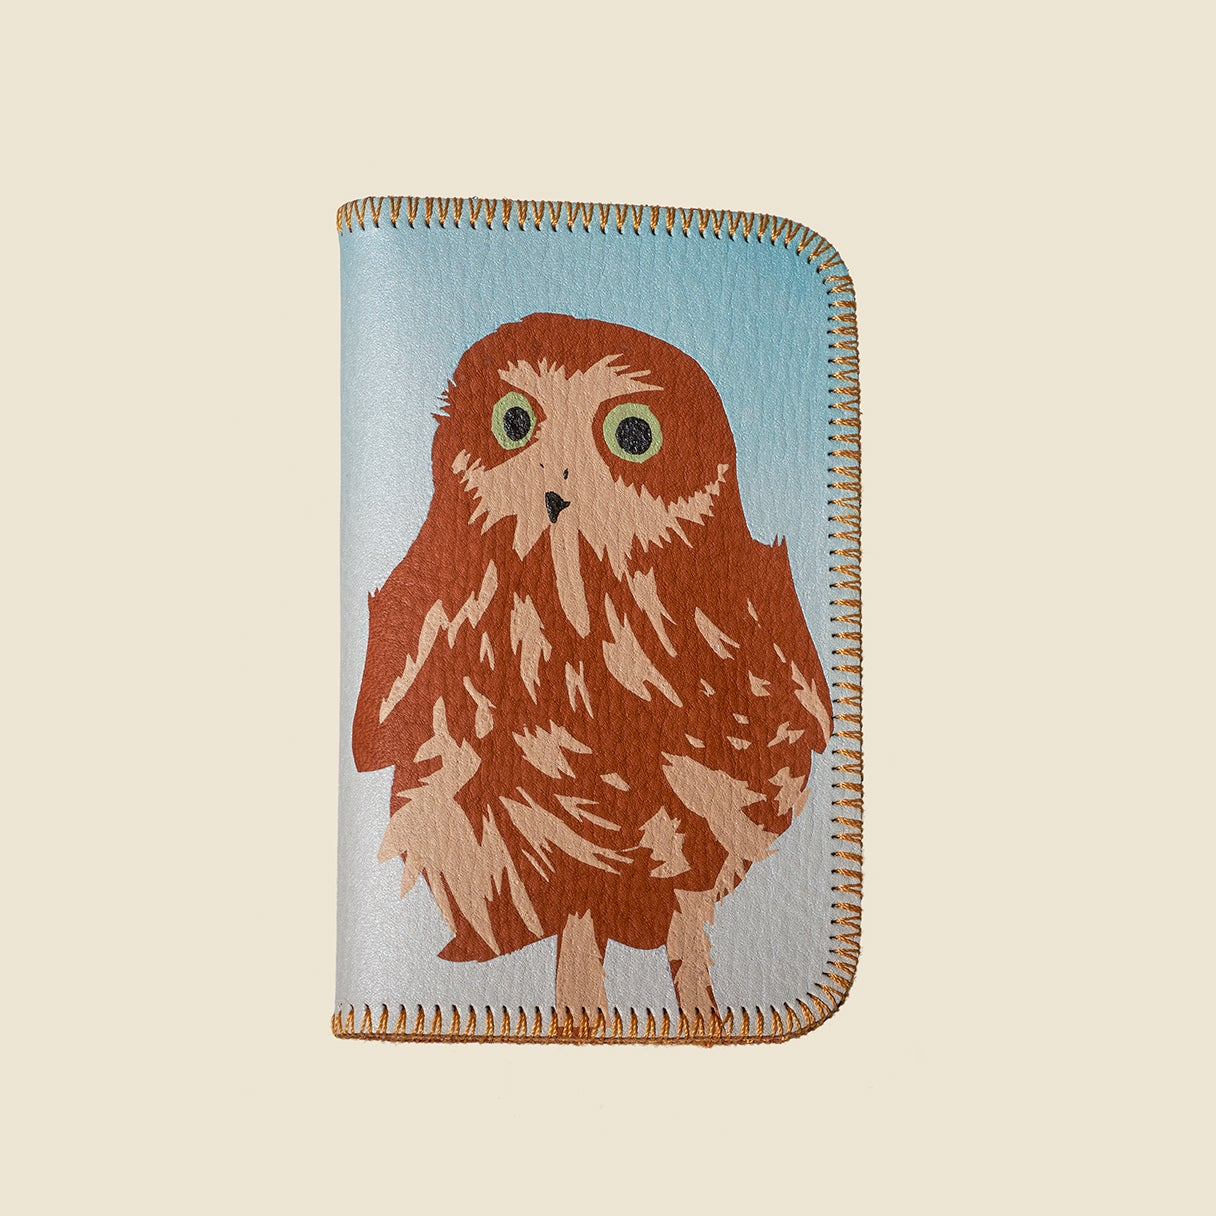 Image of New! Owl card holder